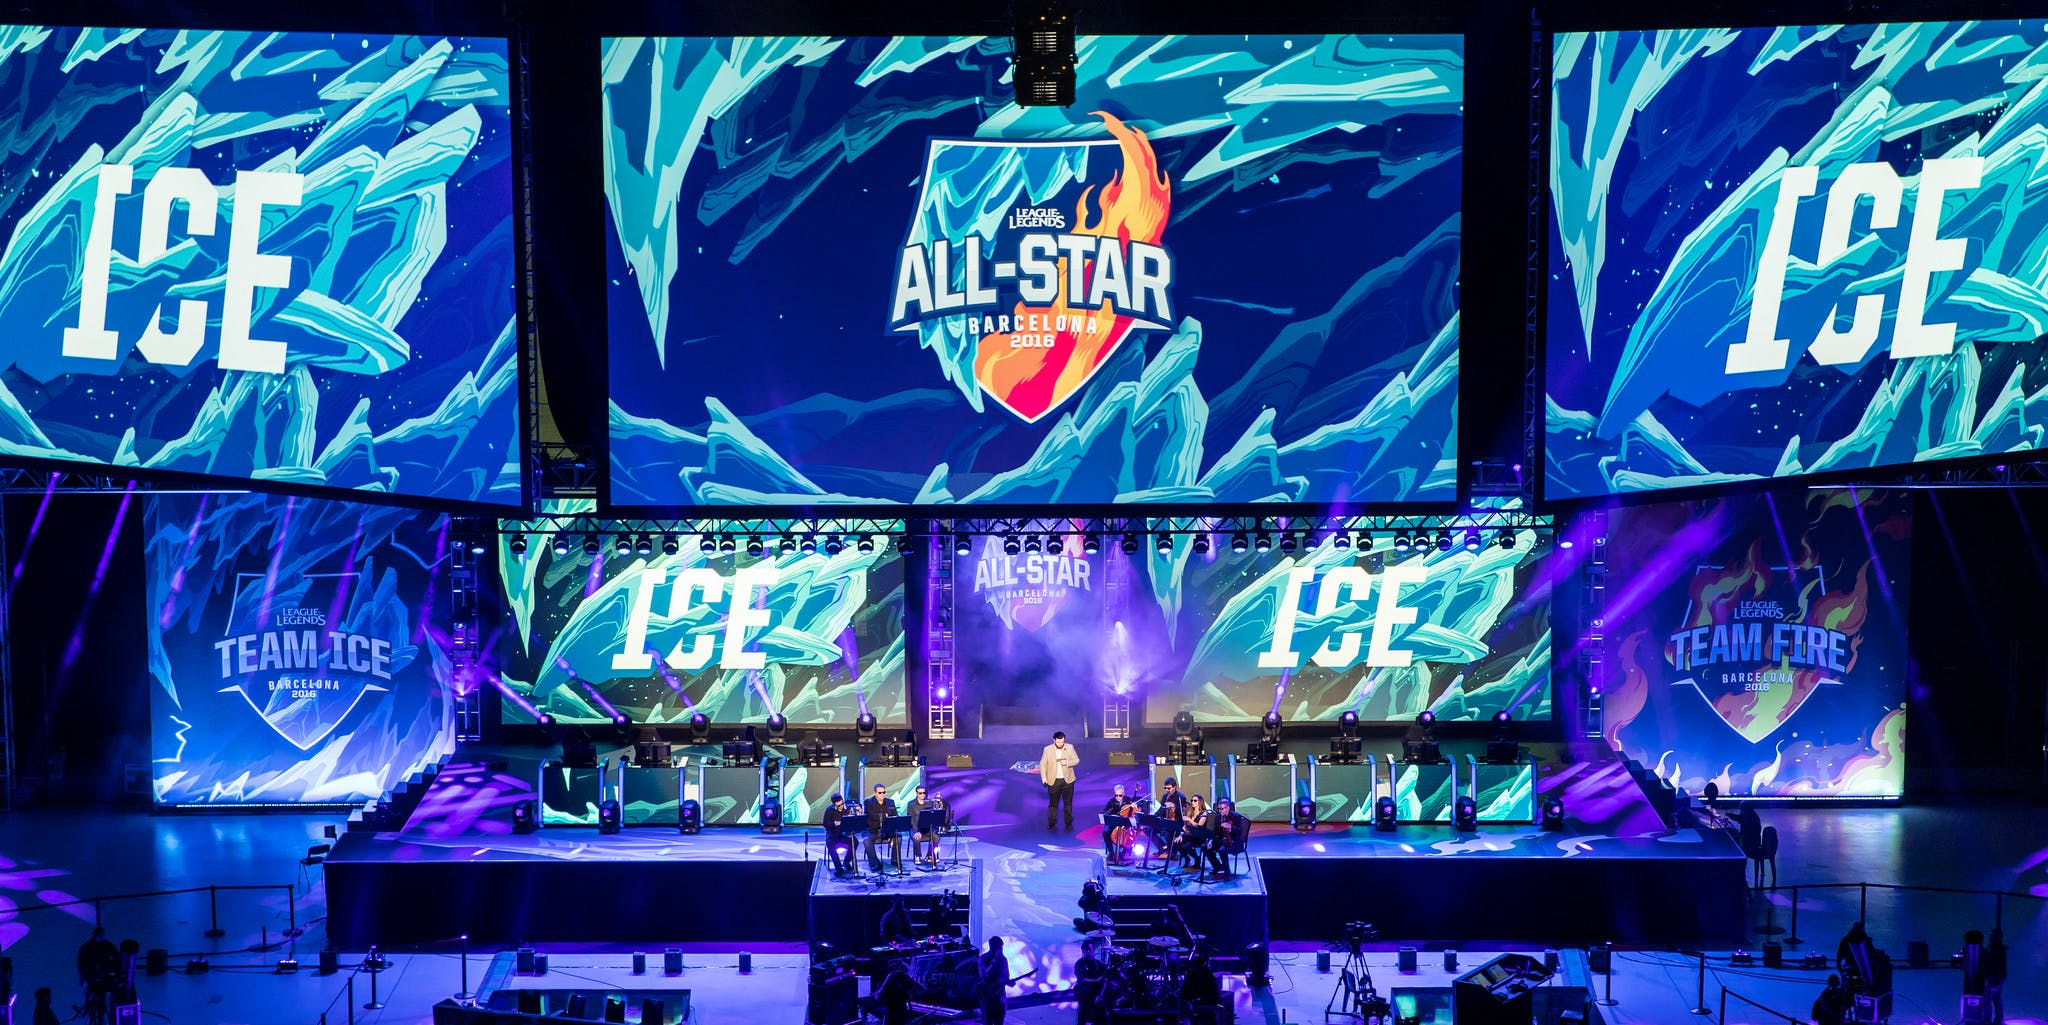 The closing cermony on the final day of the League of Legends All-Star Event, at the Palau Sant Jordi in Barcelona, Spain on 11 December, 2016.